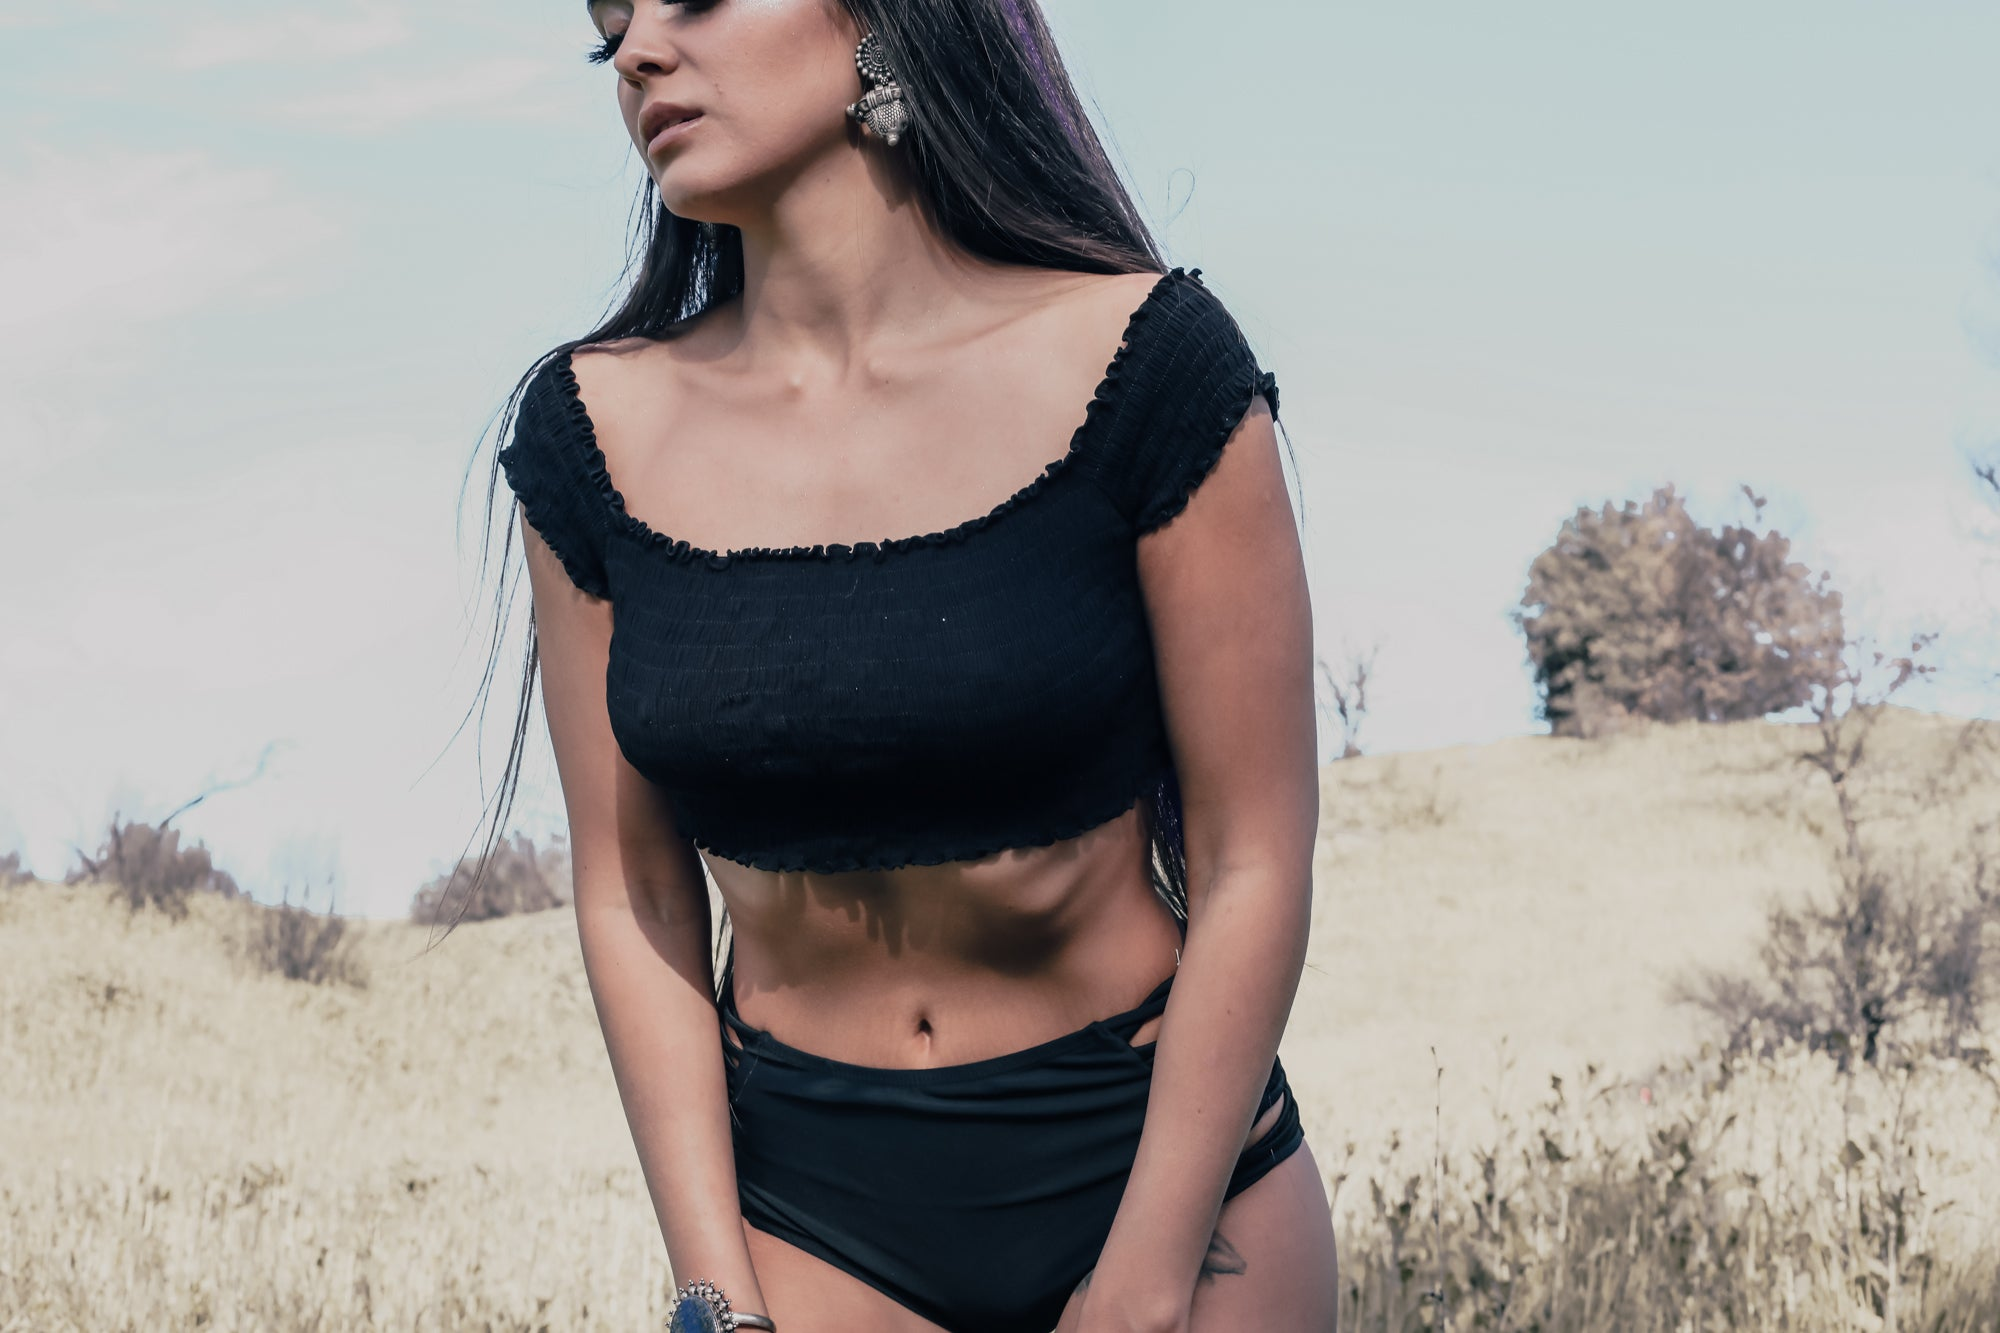 Black Festival Crop Top; Little black top